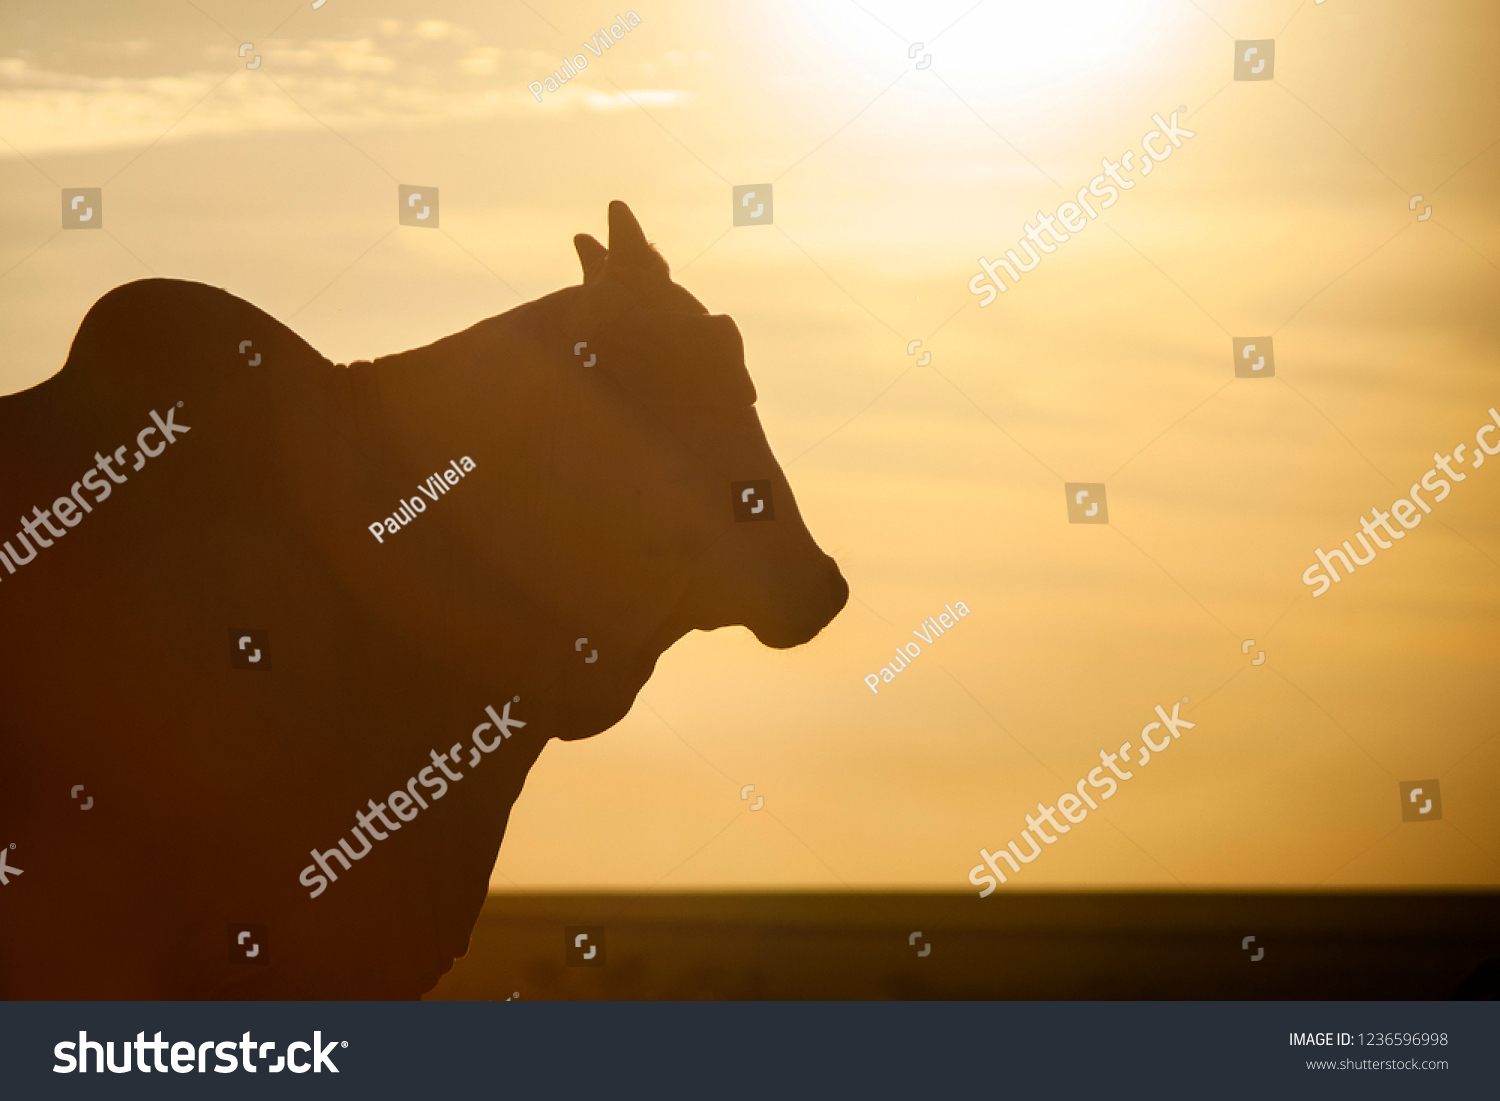 Nelore silhouette in sunset day. Bovine originating in India and race representing 85% of the Brazilian cattle for meat production. #1236596998